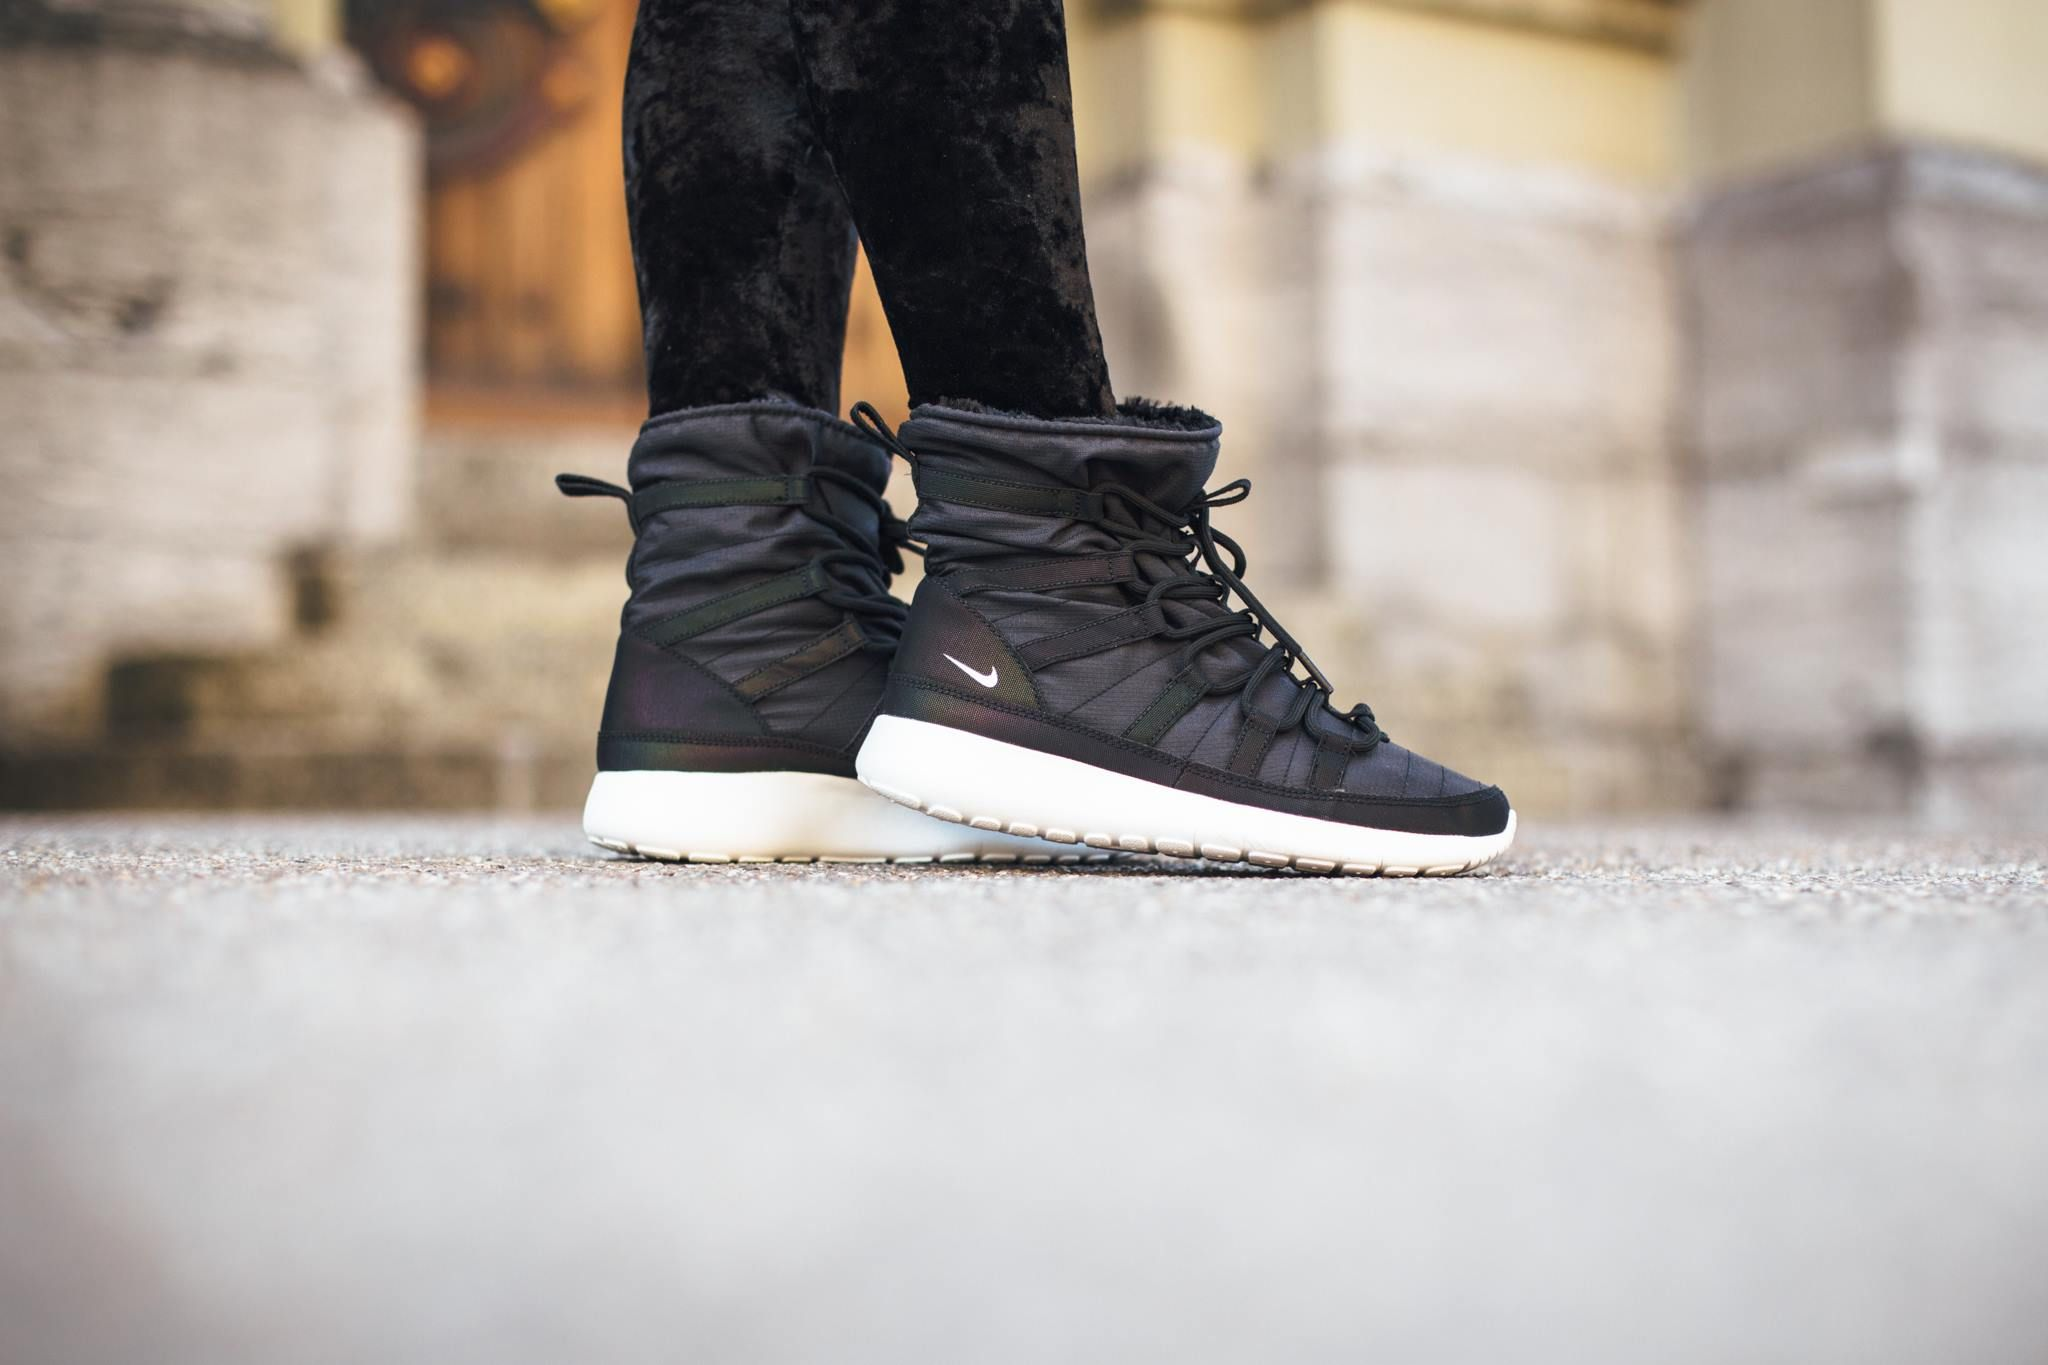 47d9c0d2ec08 ... spain nike roshe one hi flash black metallic silver summit white 2  0afa3 0e944